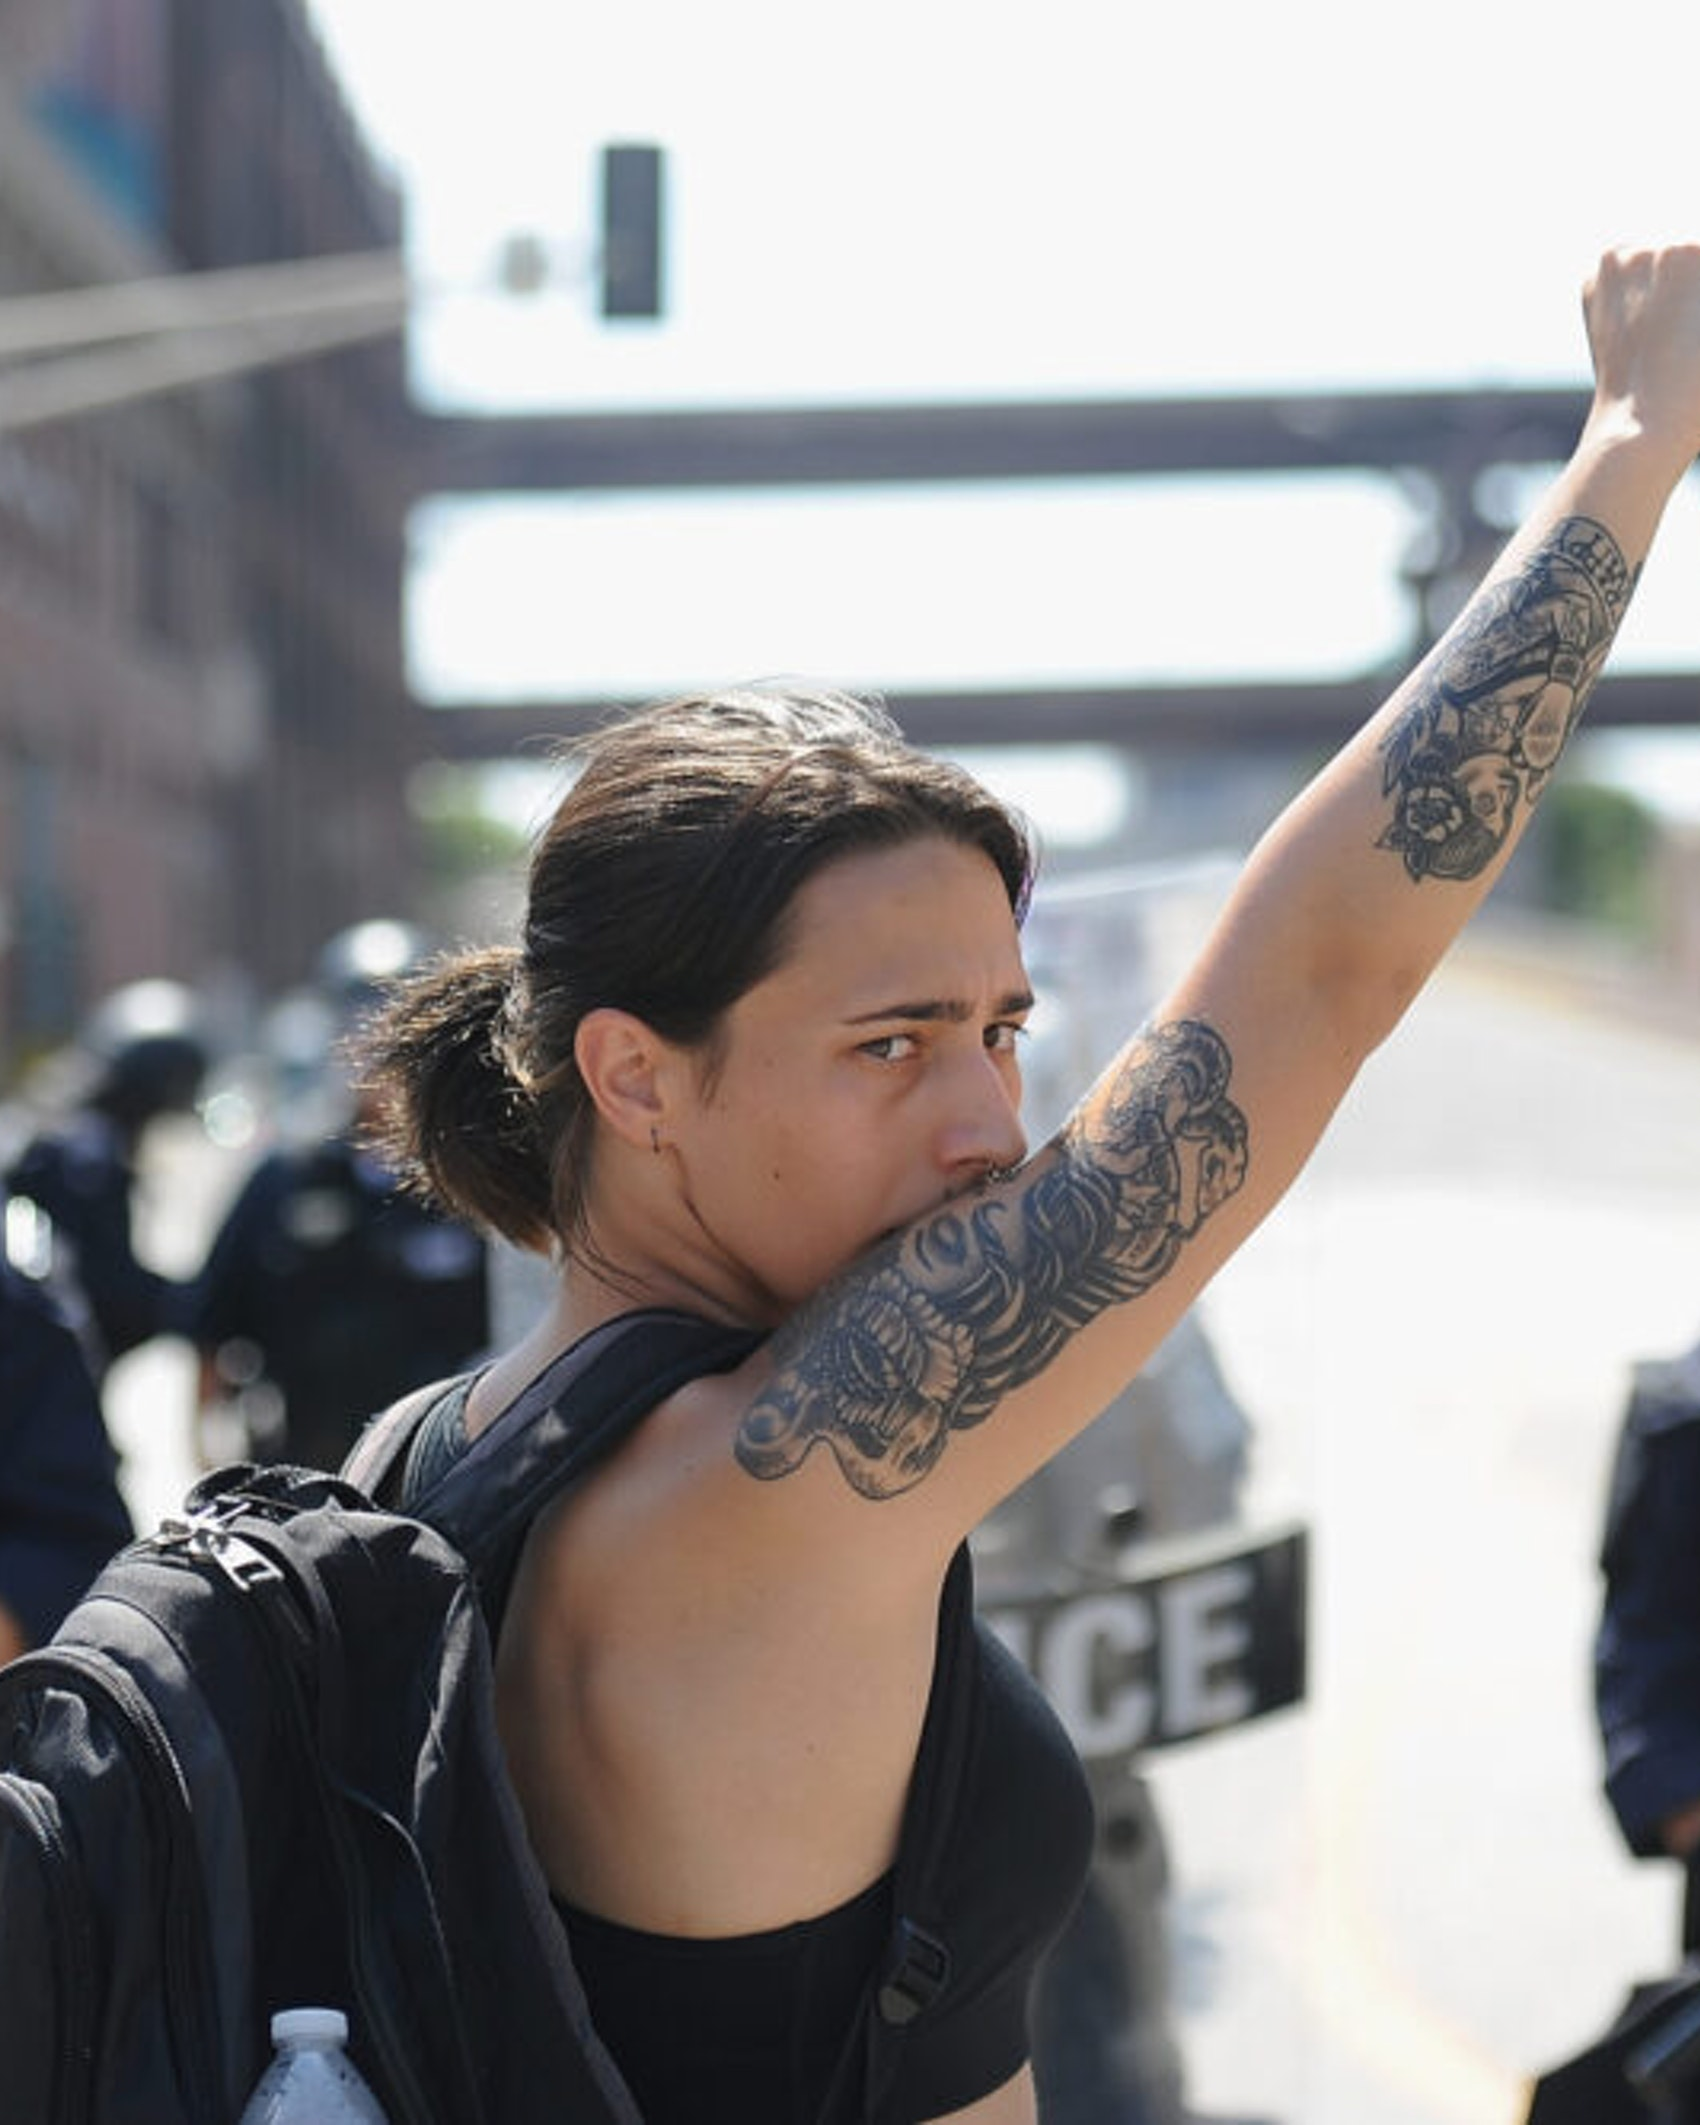 ST. LOUIS, MO - SEPTEMBER 15: A woman raises her fist as she approaches a line of police officers in riot gear during a protest action following a not guilty verdict on September 15, 2017 in St. Louis, Missouri. Protests erupted today following the acquittal of former St. Louis police officer Jason Stockley, who was charged with first-degree murder last year in the shooting death of motorist Anthony Lamar Smith in 2011.